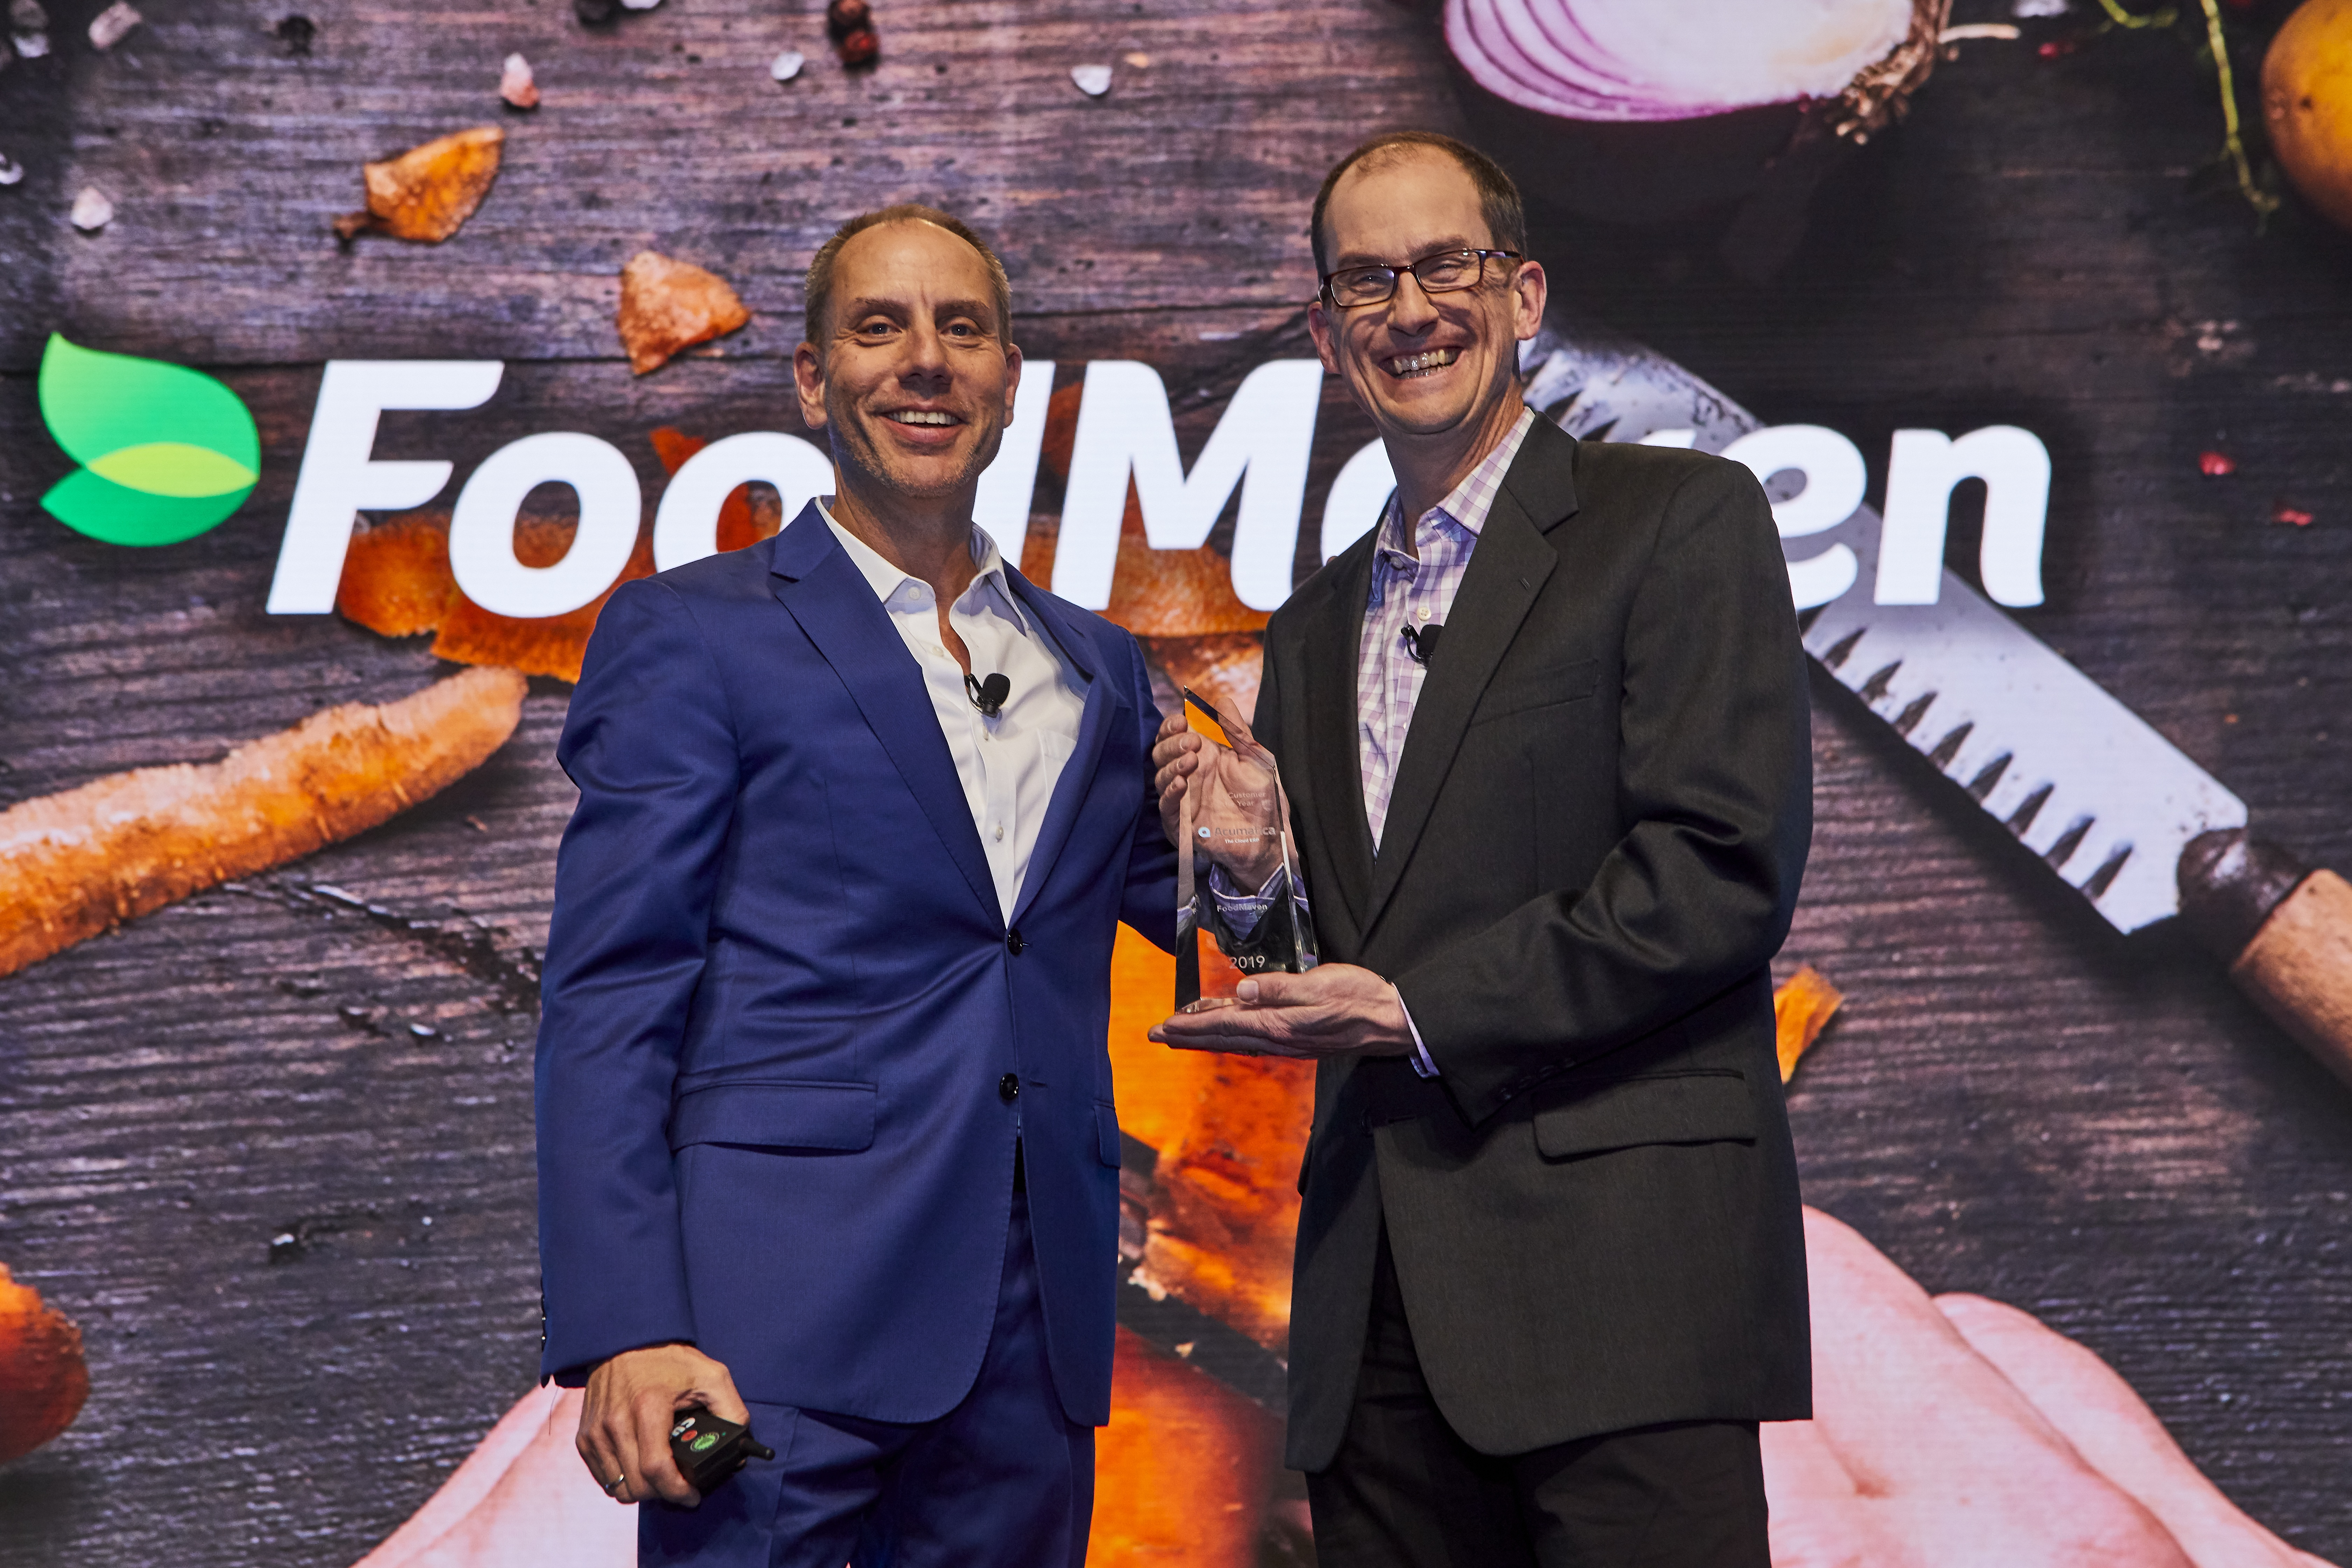 CEO Jon Roskill and Food Maven, Acumatica's Impact Customer of the Year